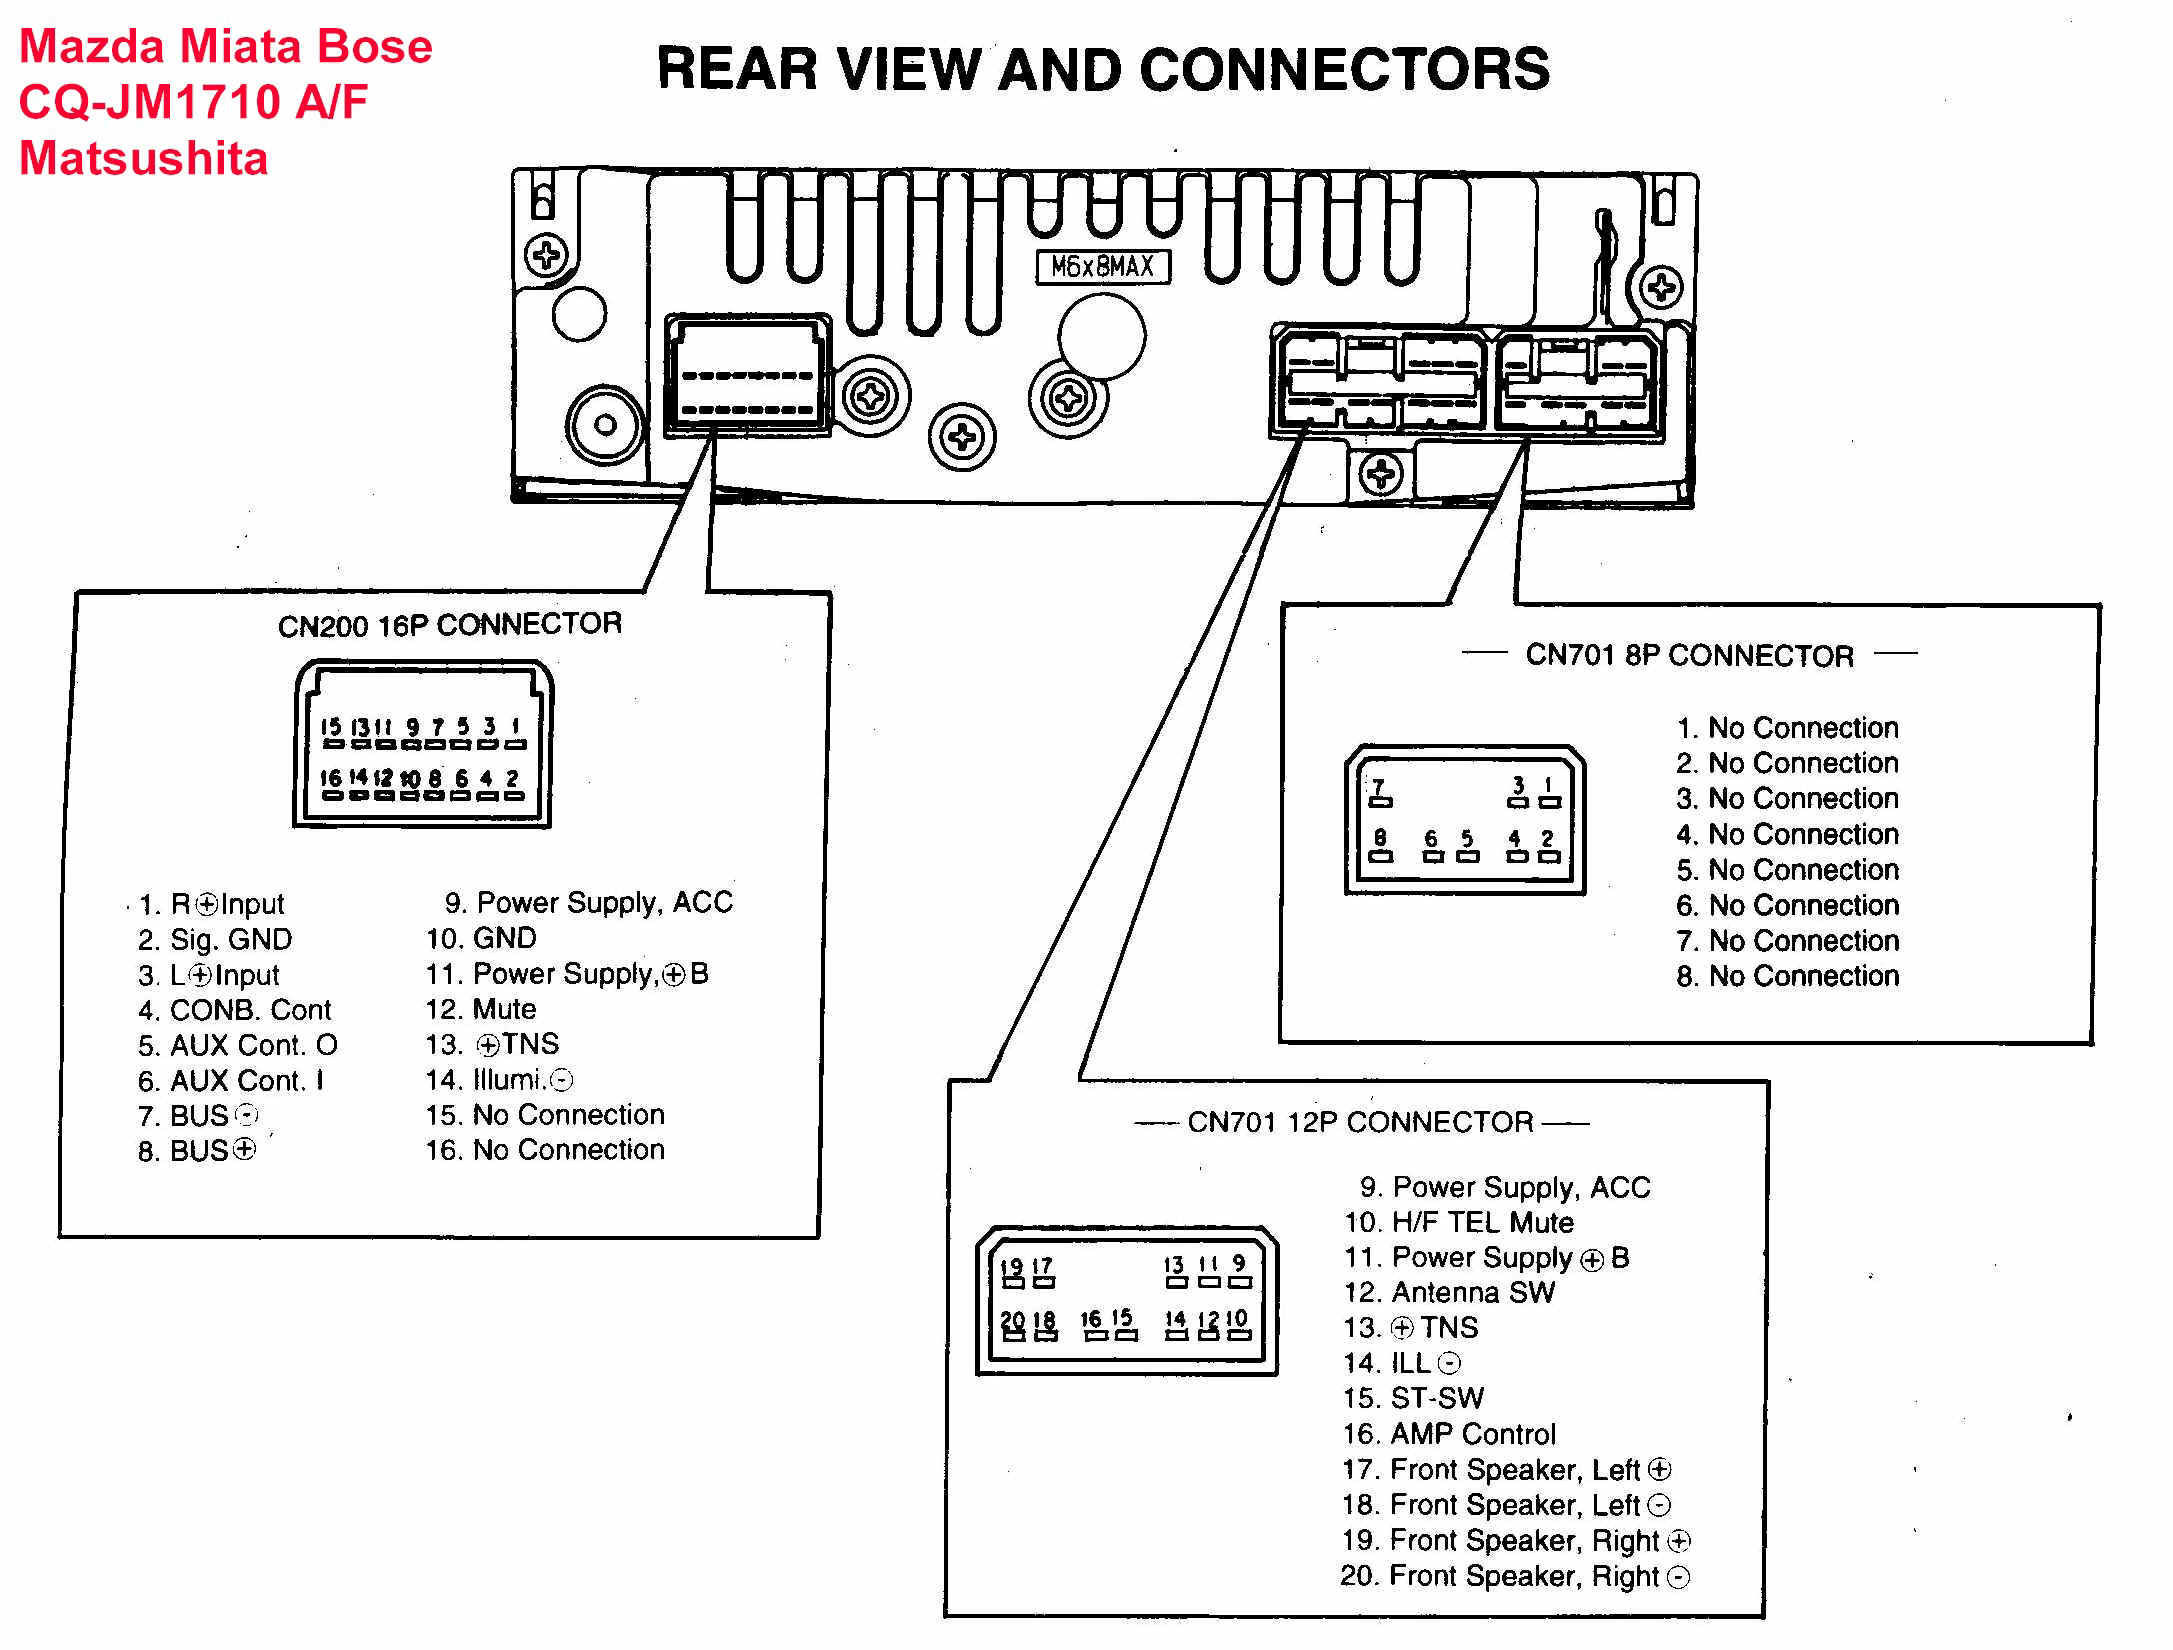 Car Audio Wire Diagram Codes Mazda - Factory Car Stereo Repair